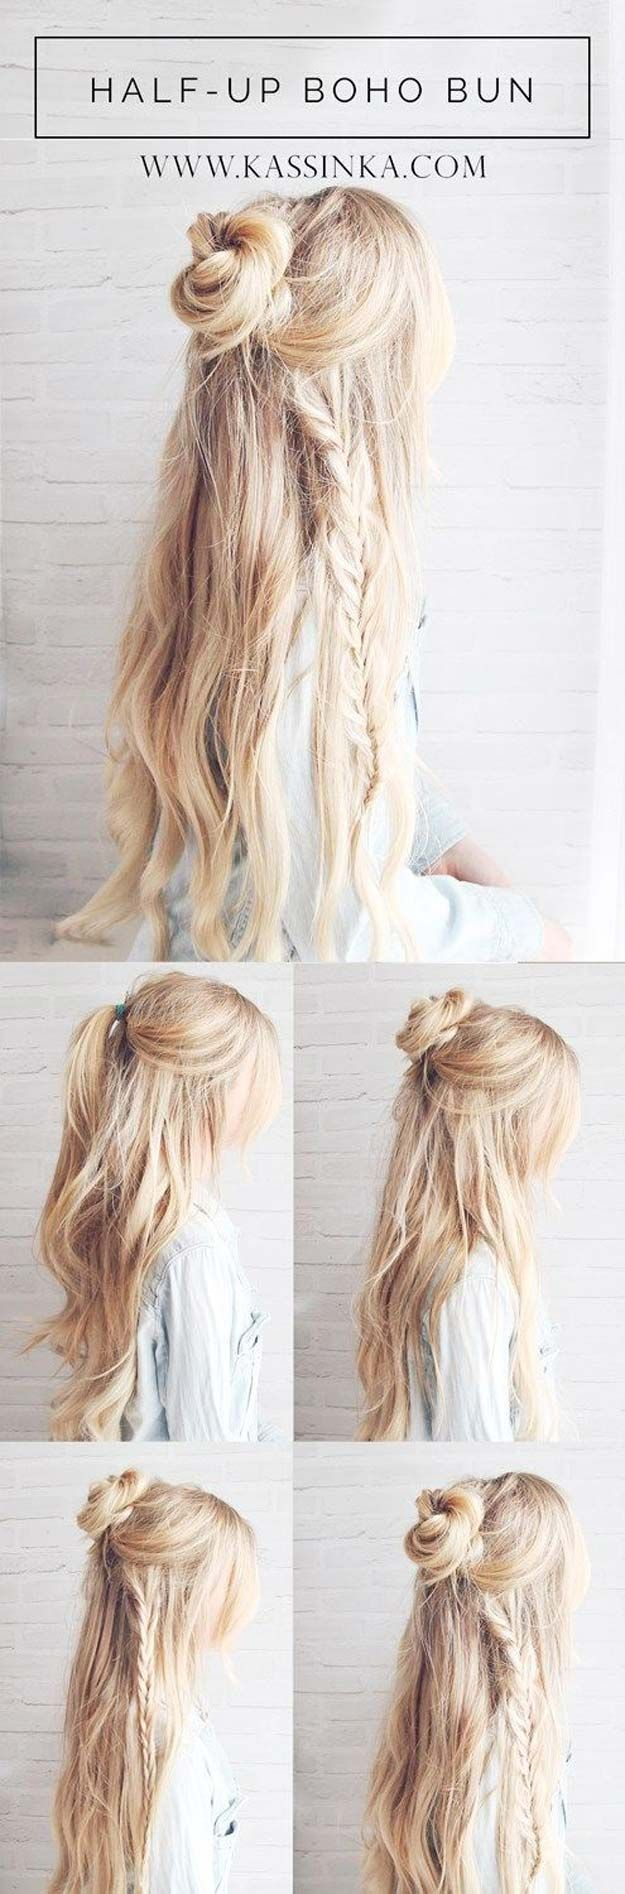 Best Hairstyles For Long Hair   Boho Braided Bun Hair   Step By Step  Tutorials For Easy Curls, Updo, Half Up, Braids And Lazy Girl Looks.